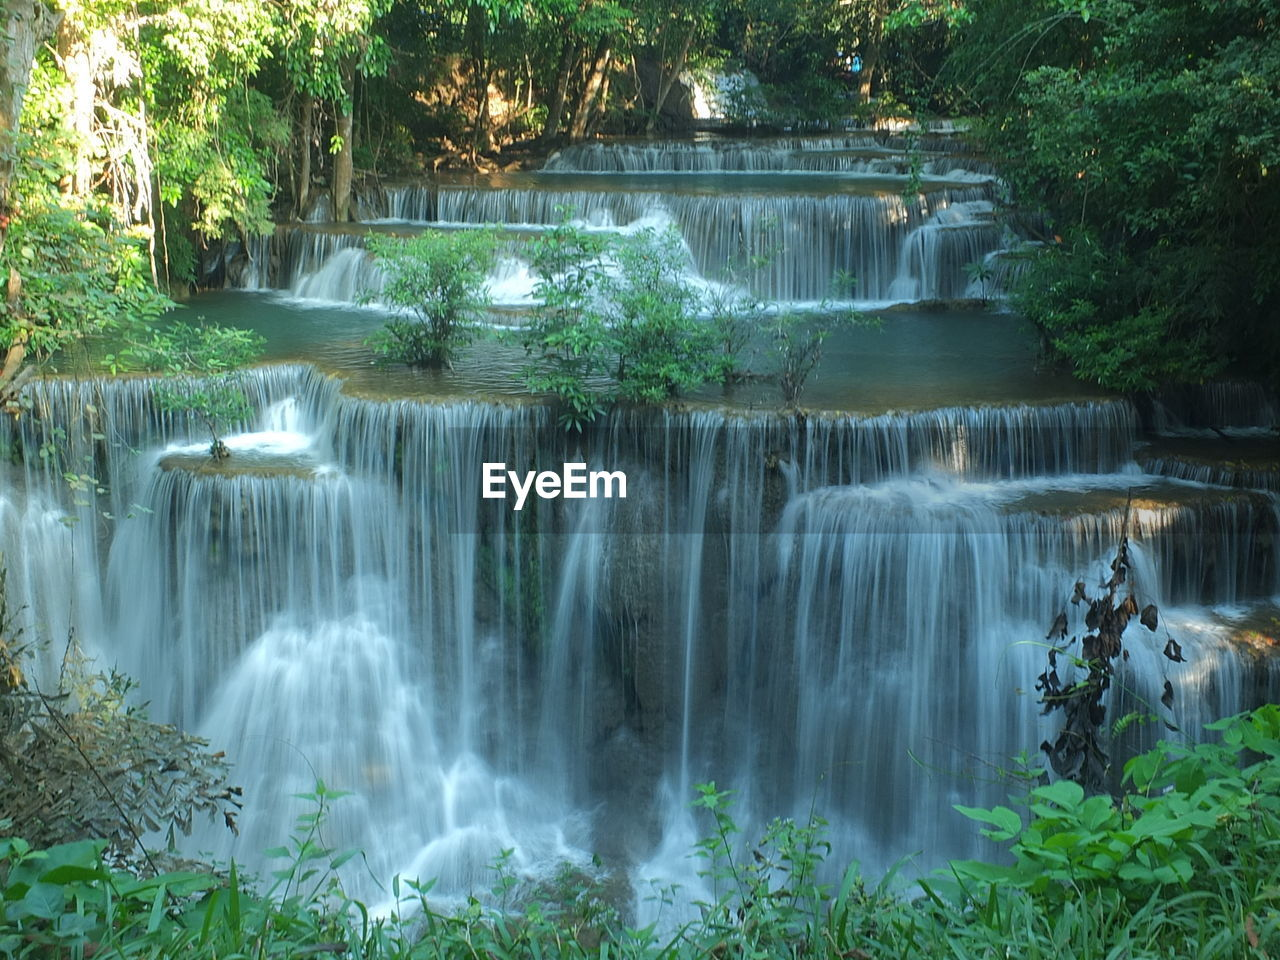 plant, scenics - nature, water, beauty in nature, waterfall, tree, forest, nature, long exposure, flowing water, motion, environment, flowing, no people, blurred motion, day, rainforest, growth, outdoors, power in nature, falling water